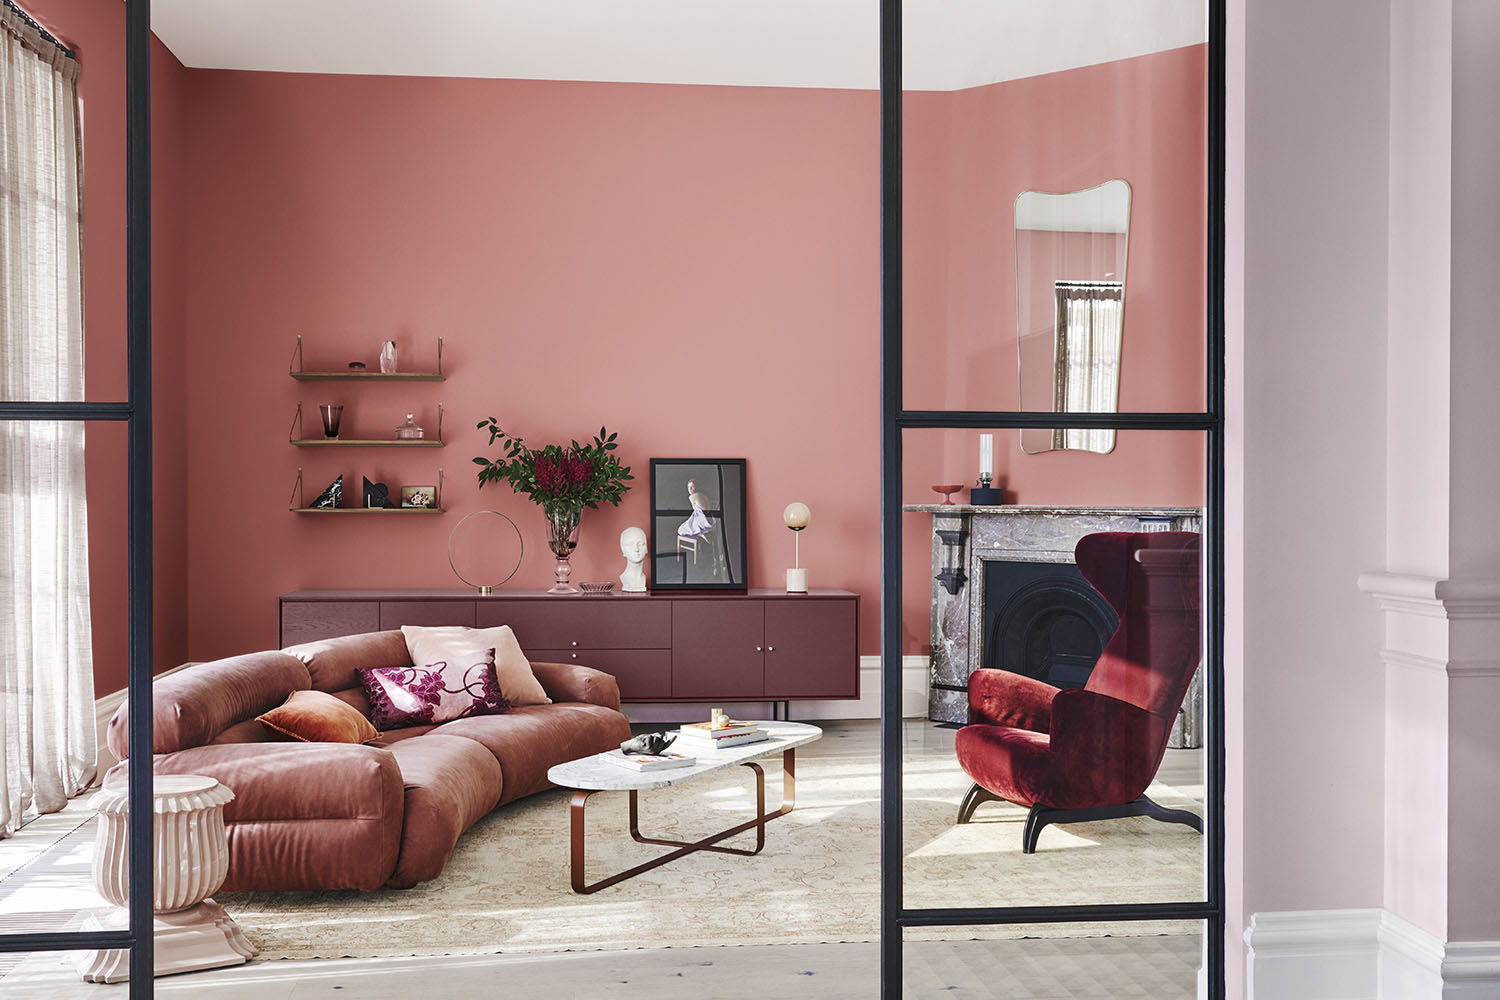 Dulux Colour Forecast 2019 Biggest Trends For Interior